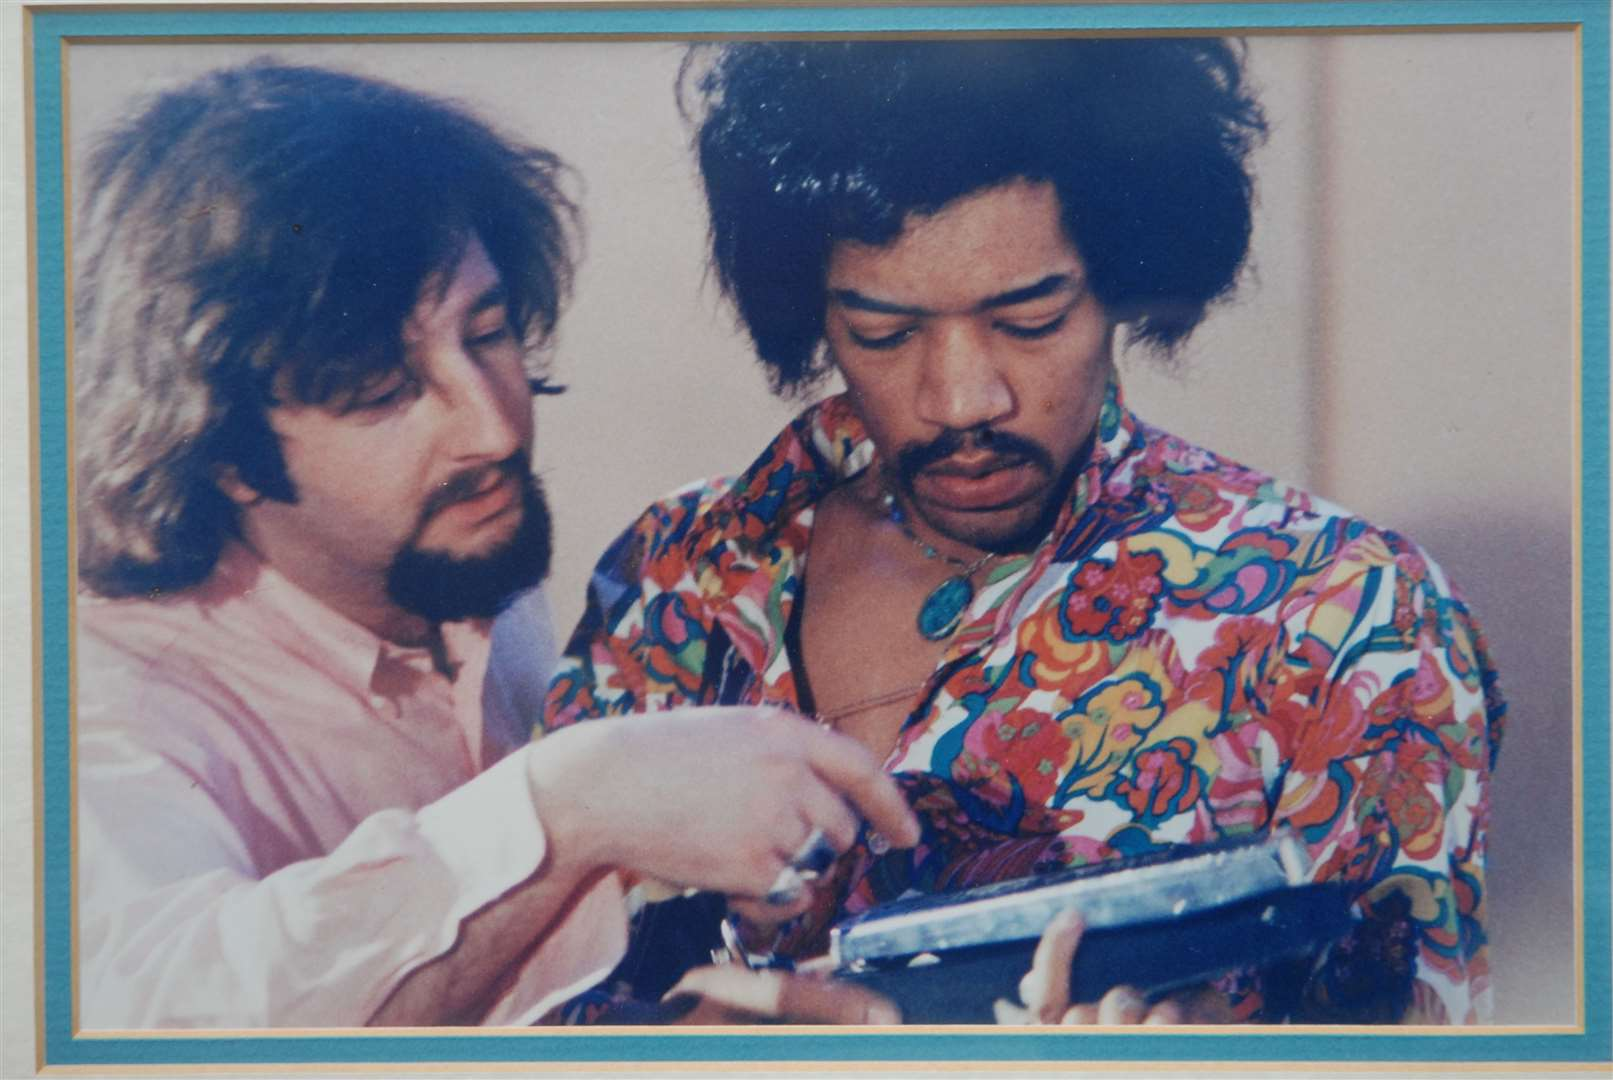 Gerry Stickells from Lydd Lifetime Award for music. with Jimmy Hendrix (GERRY STARTED INTHE BUSINESS AT THE AGE OF 22) picture by Barry Duffield Gerry started in the business at the age of 22 (7747706)